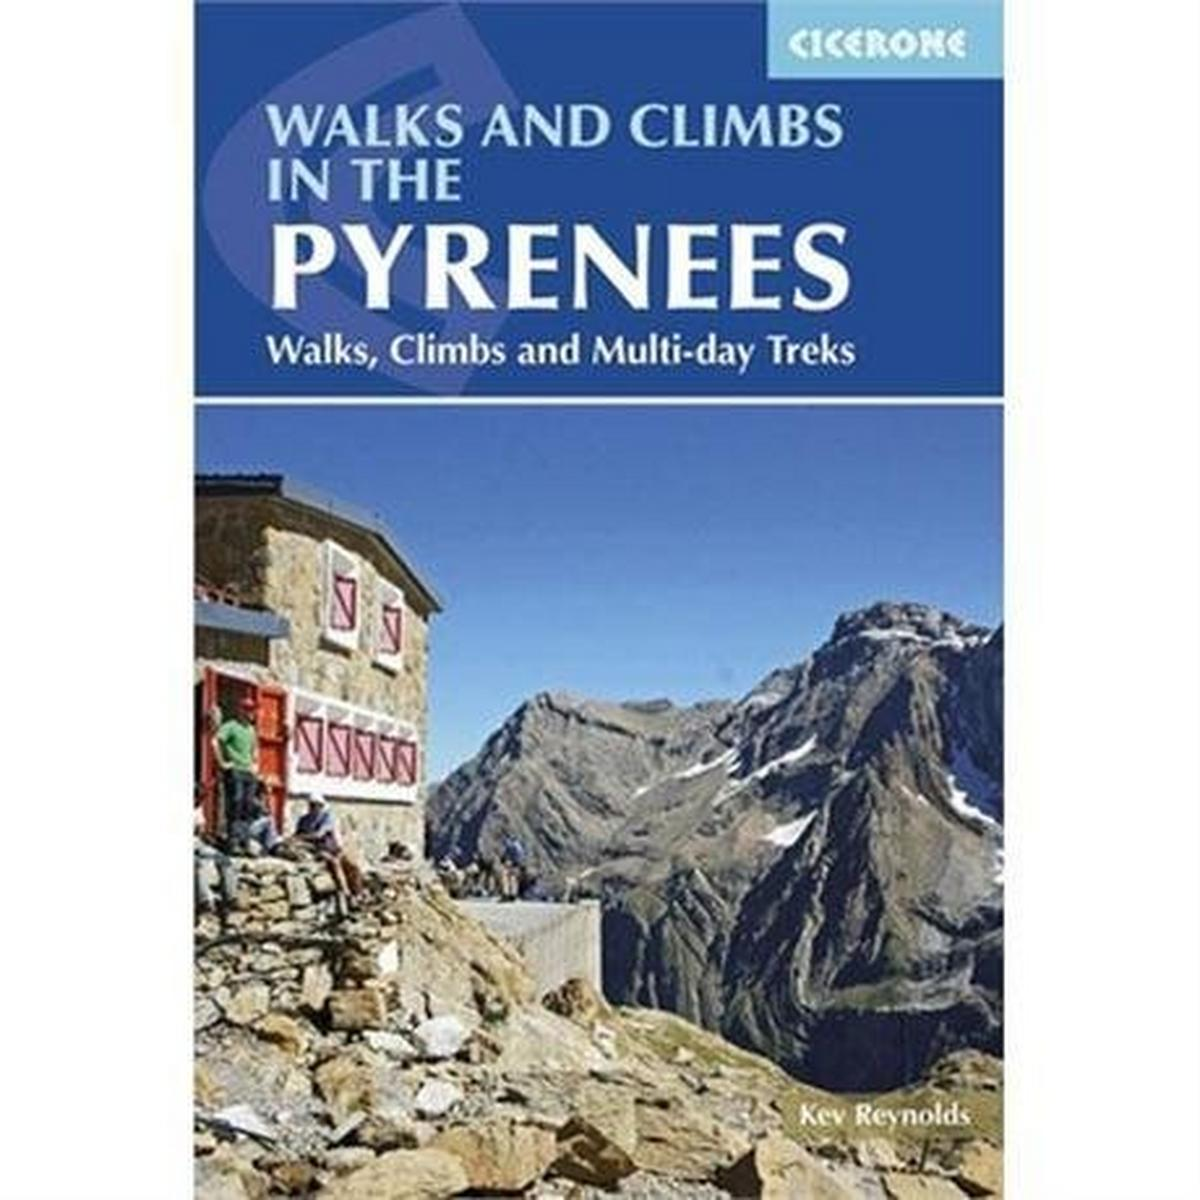 Cicerone Guide Book: Walks & Climbs in the Pyrenees